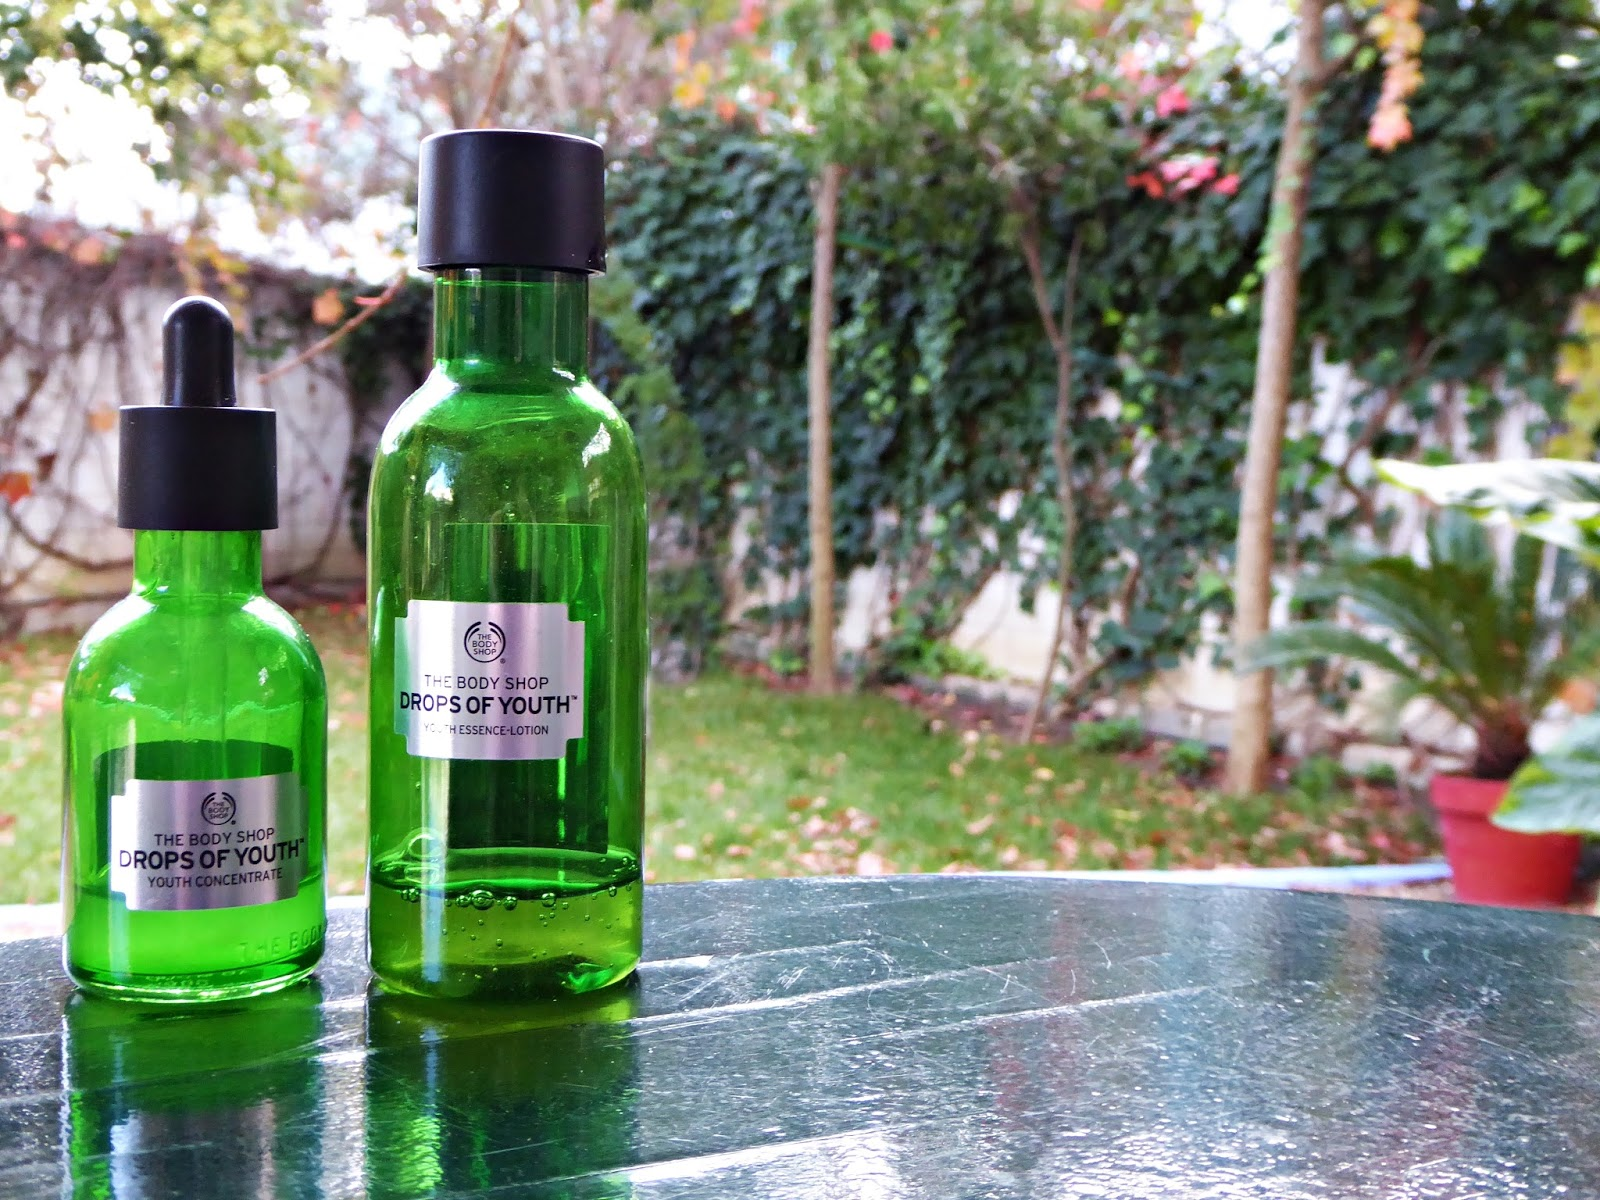 Loción esencial y concentrado de juventud Drops of youth The Body Shop